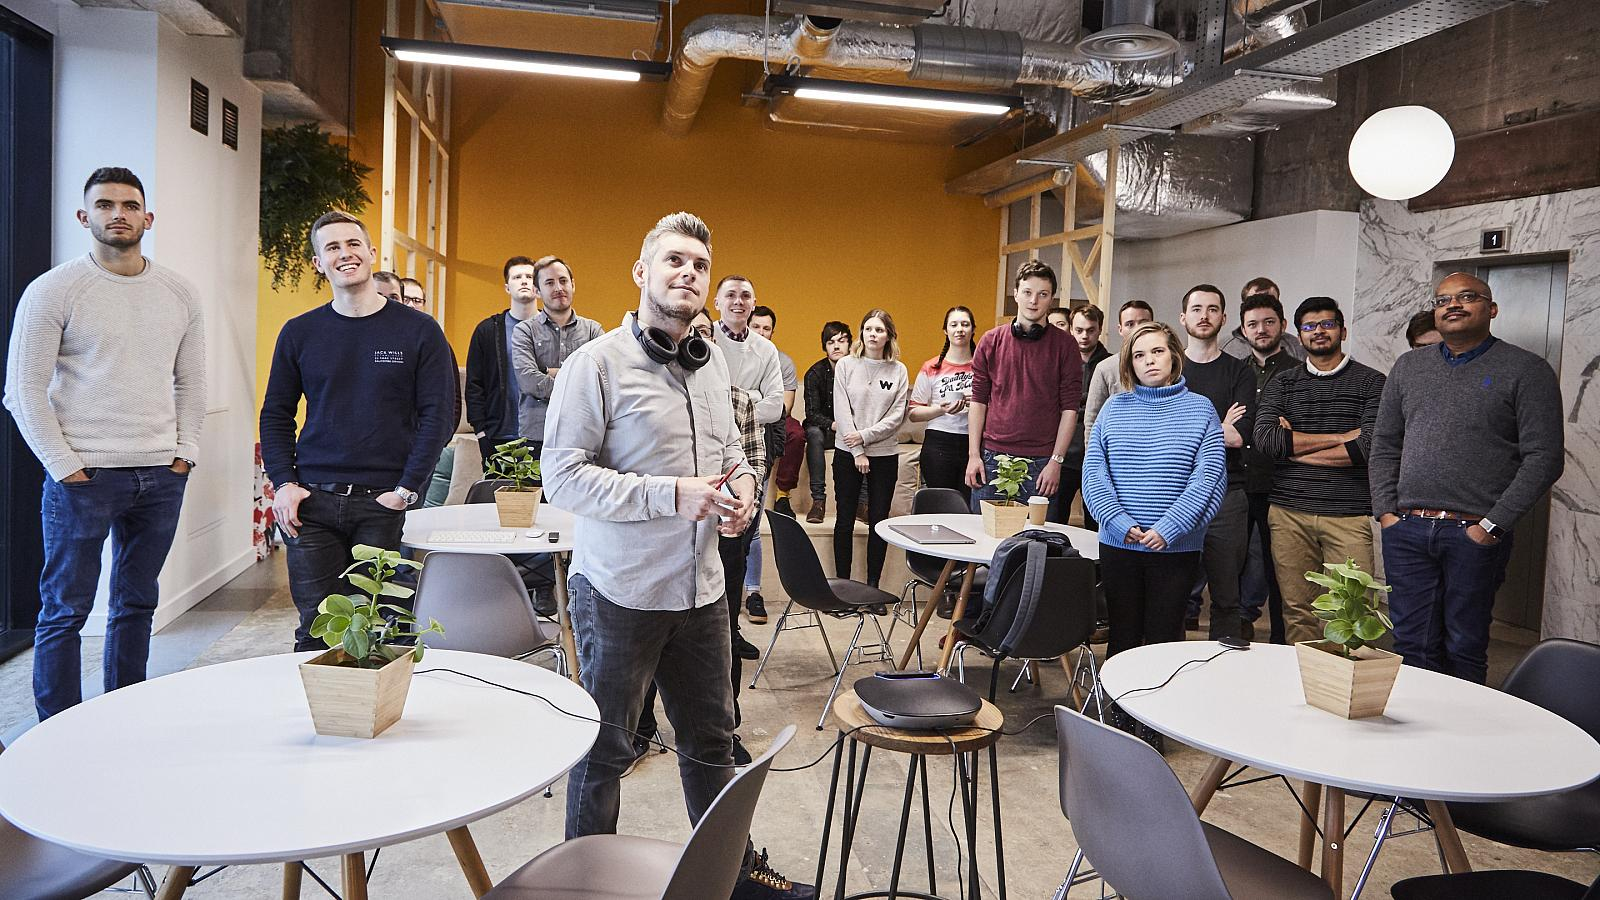 the Peak team in its Manchester HQ